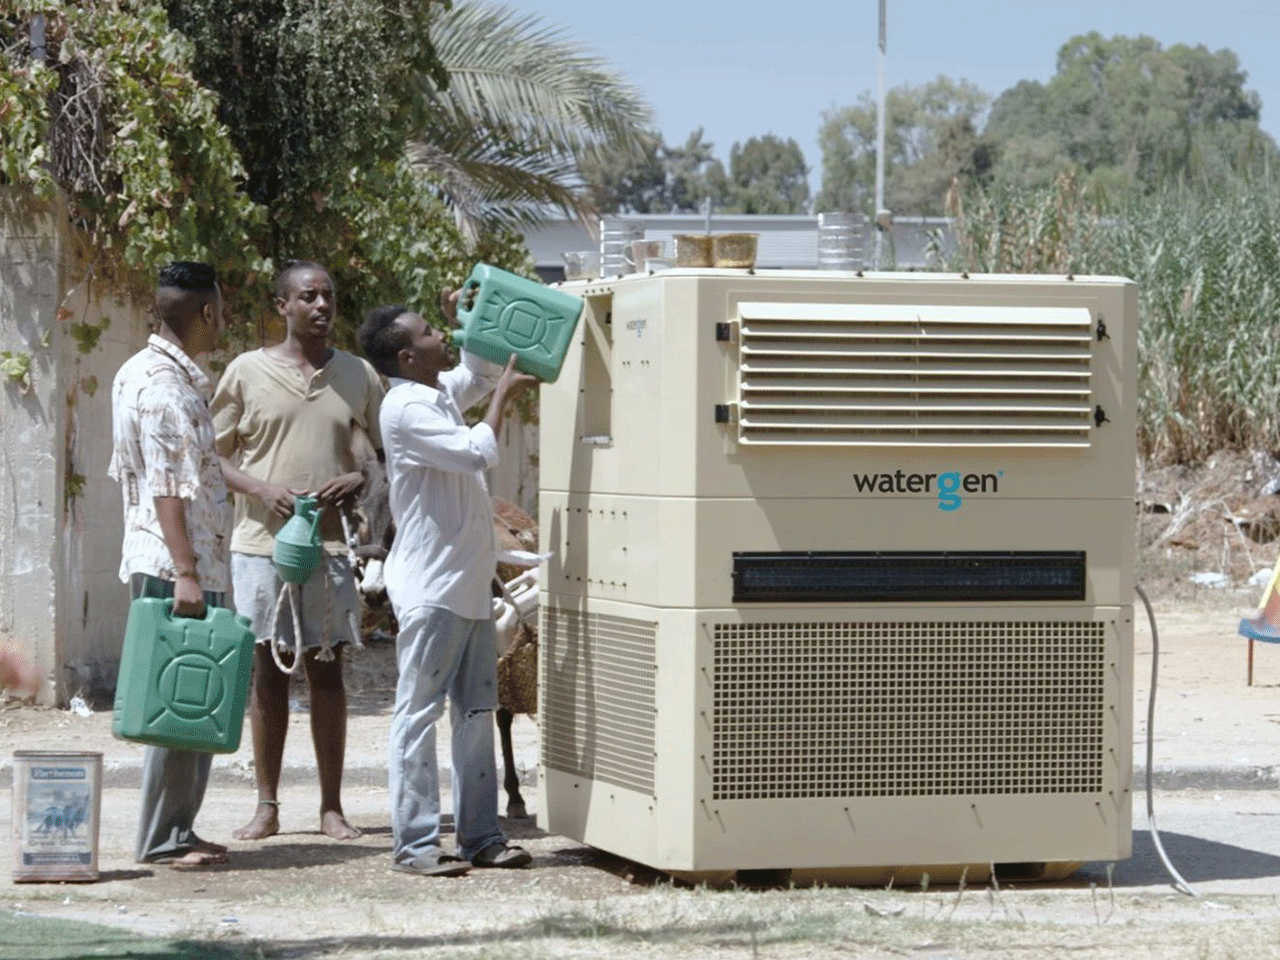 Israeli Solutions to the World's Drinking Water Problems